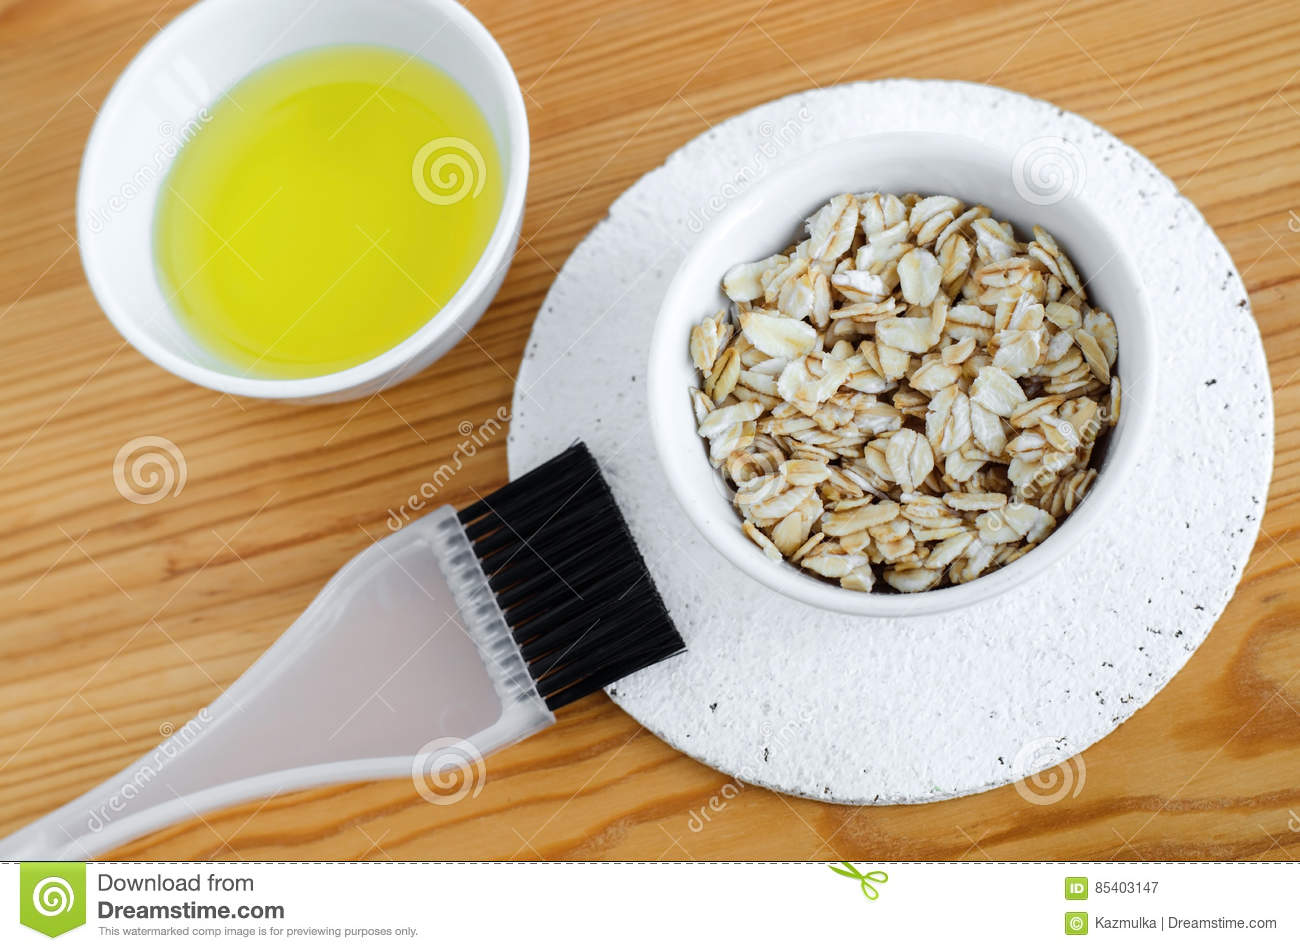 Oat Flakes And Olive Oil In A Small Ceramic Bowls For Preparing